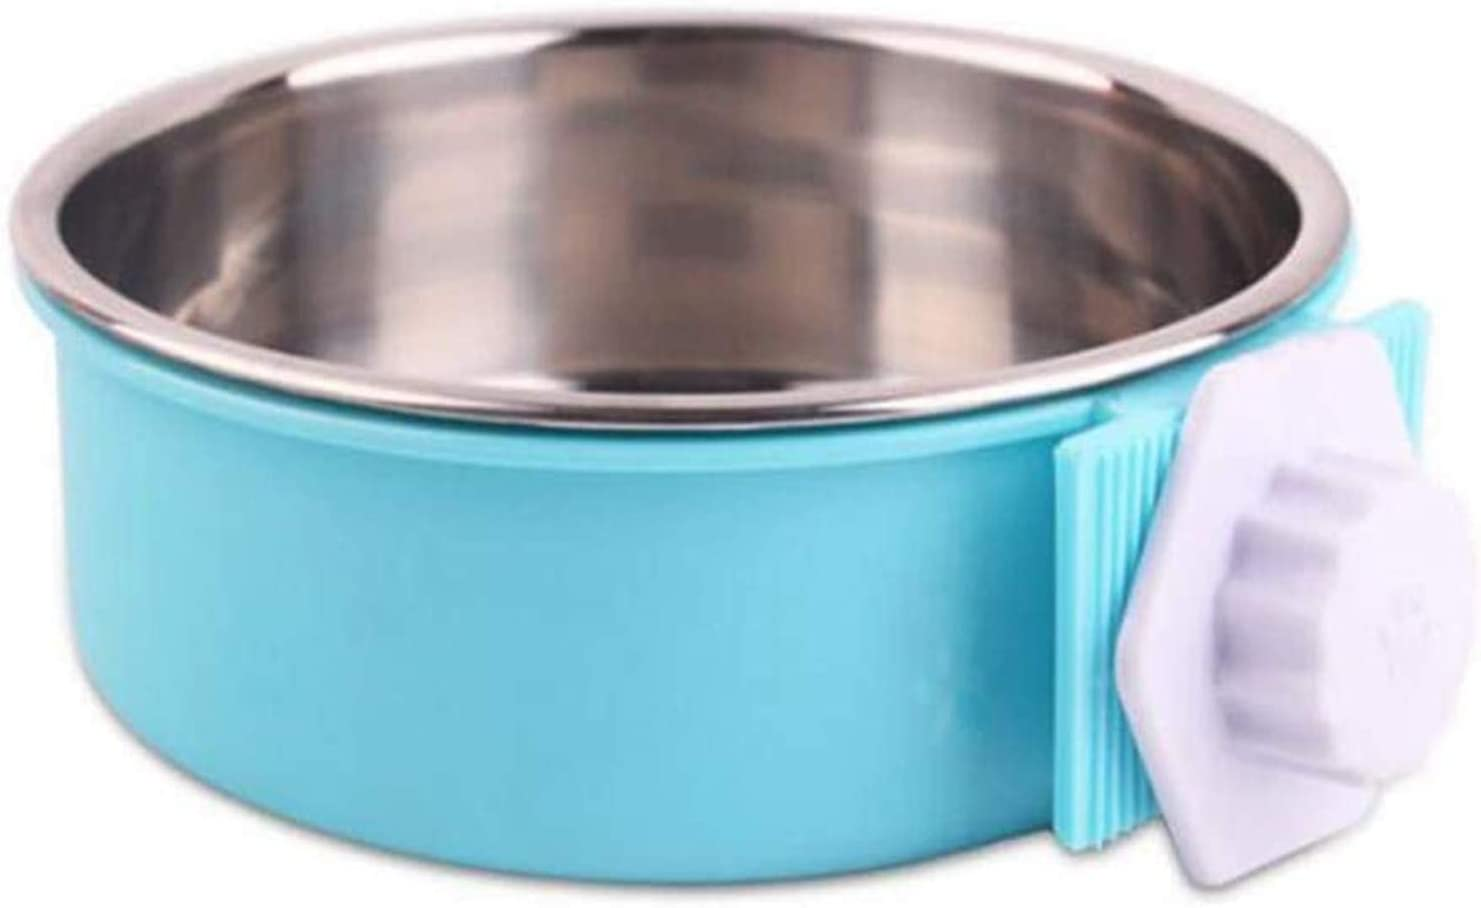 Legu Crate Dog Bowl Stainless Steel Cage Pet Water Hanging Food Bowls for Small Medium Sized Dogs Cat Birds (Blue, Large)